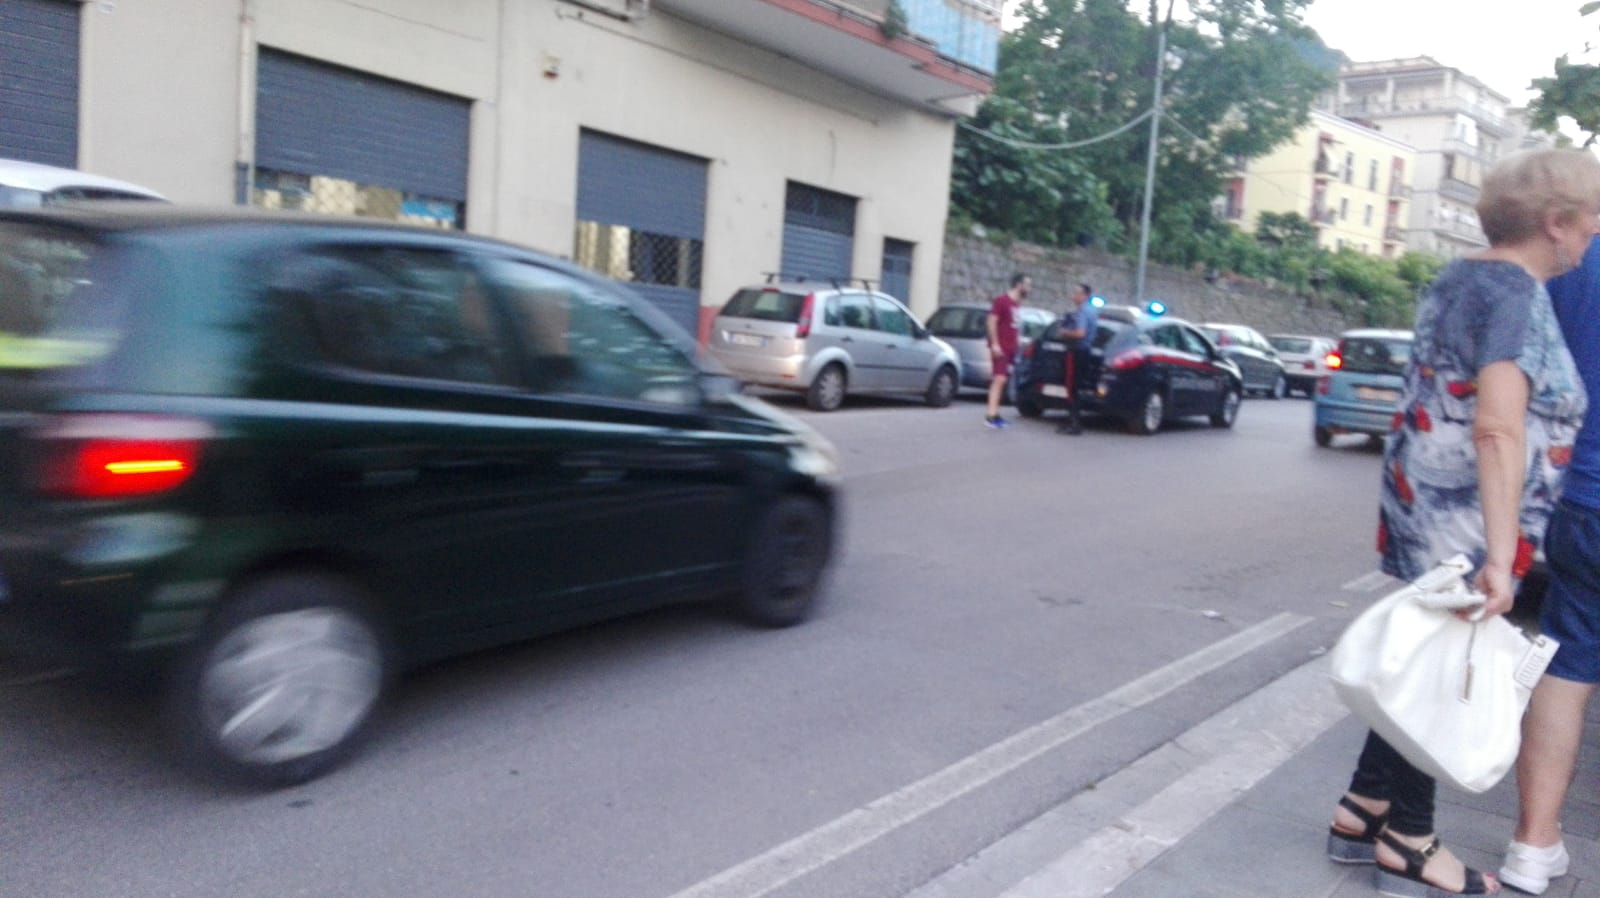 Photo of Salerno, banale tamponamento finisce con una lite: intervengono i carabinieri